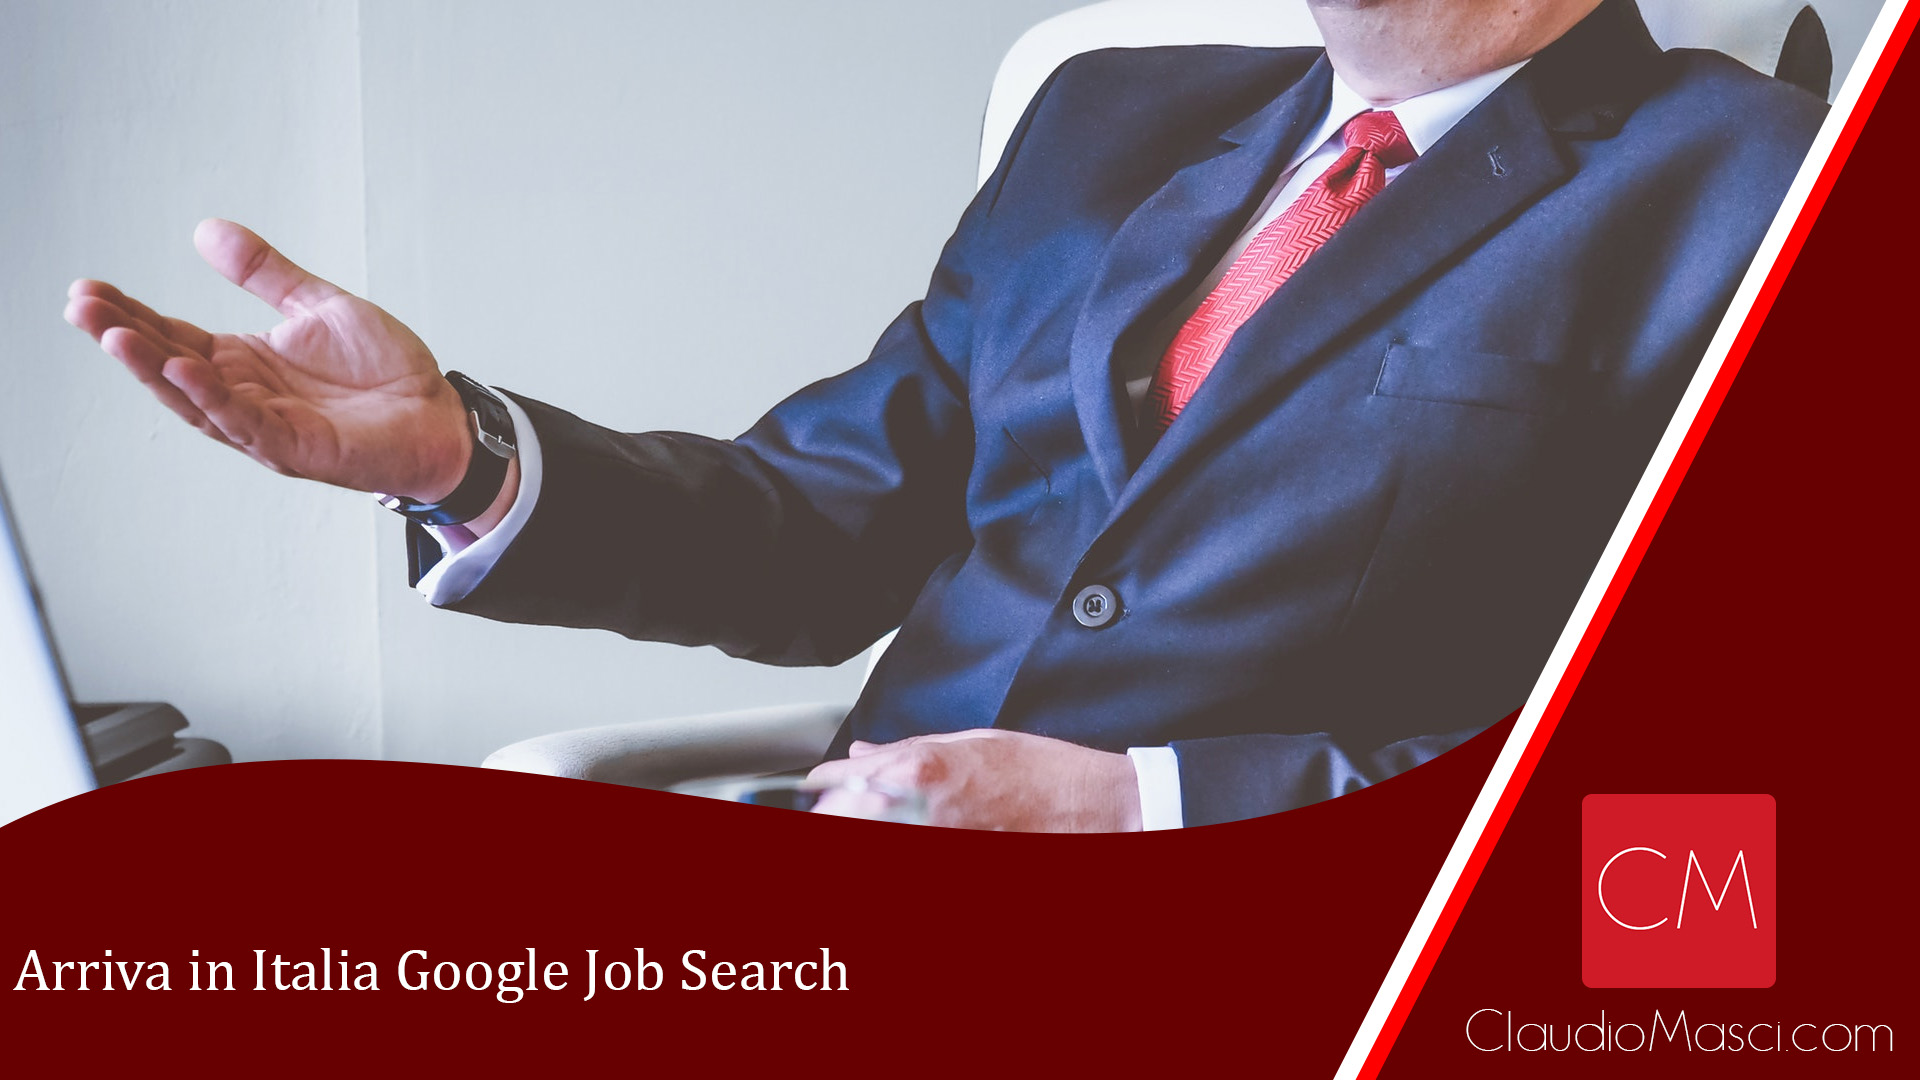 Arriva in Italia Google Job Search